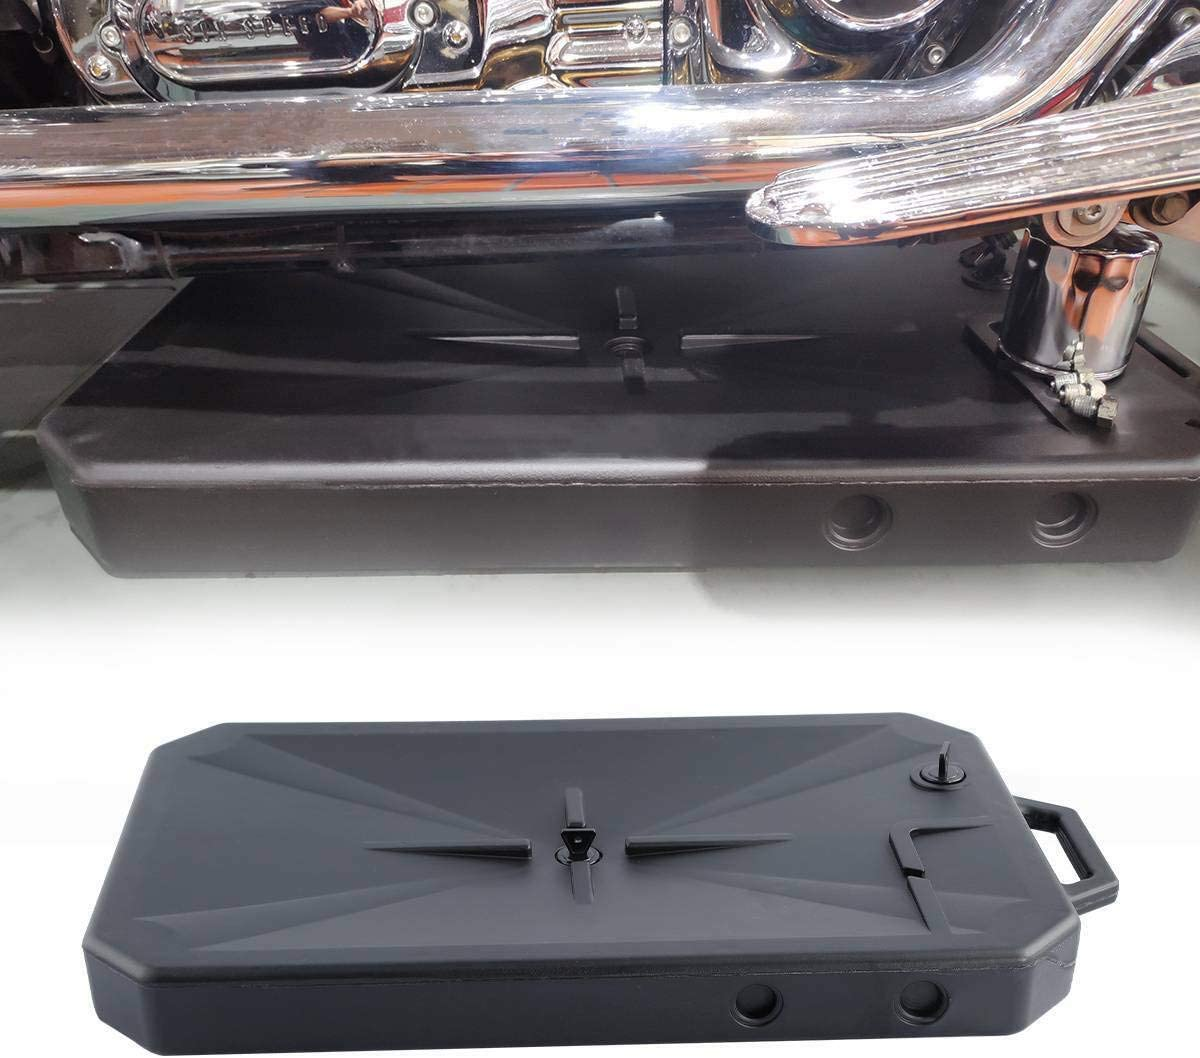 XFMT ABS Low Profile Oil Drain Pan W//Spout For Harley ALL Models Road King Street Electra Glide Heritage Softail Fat Bob Forty Eight 1984-2020